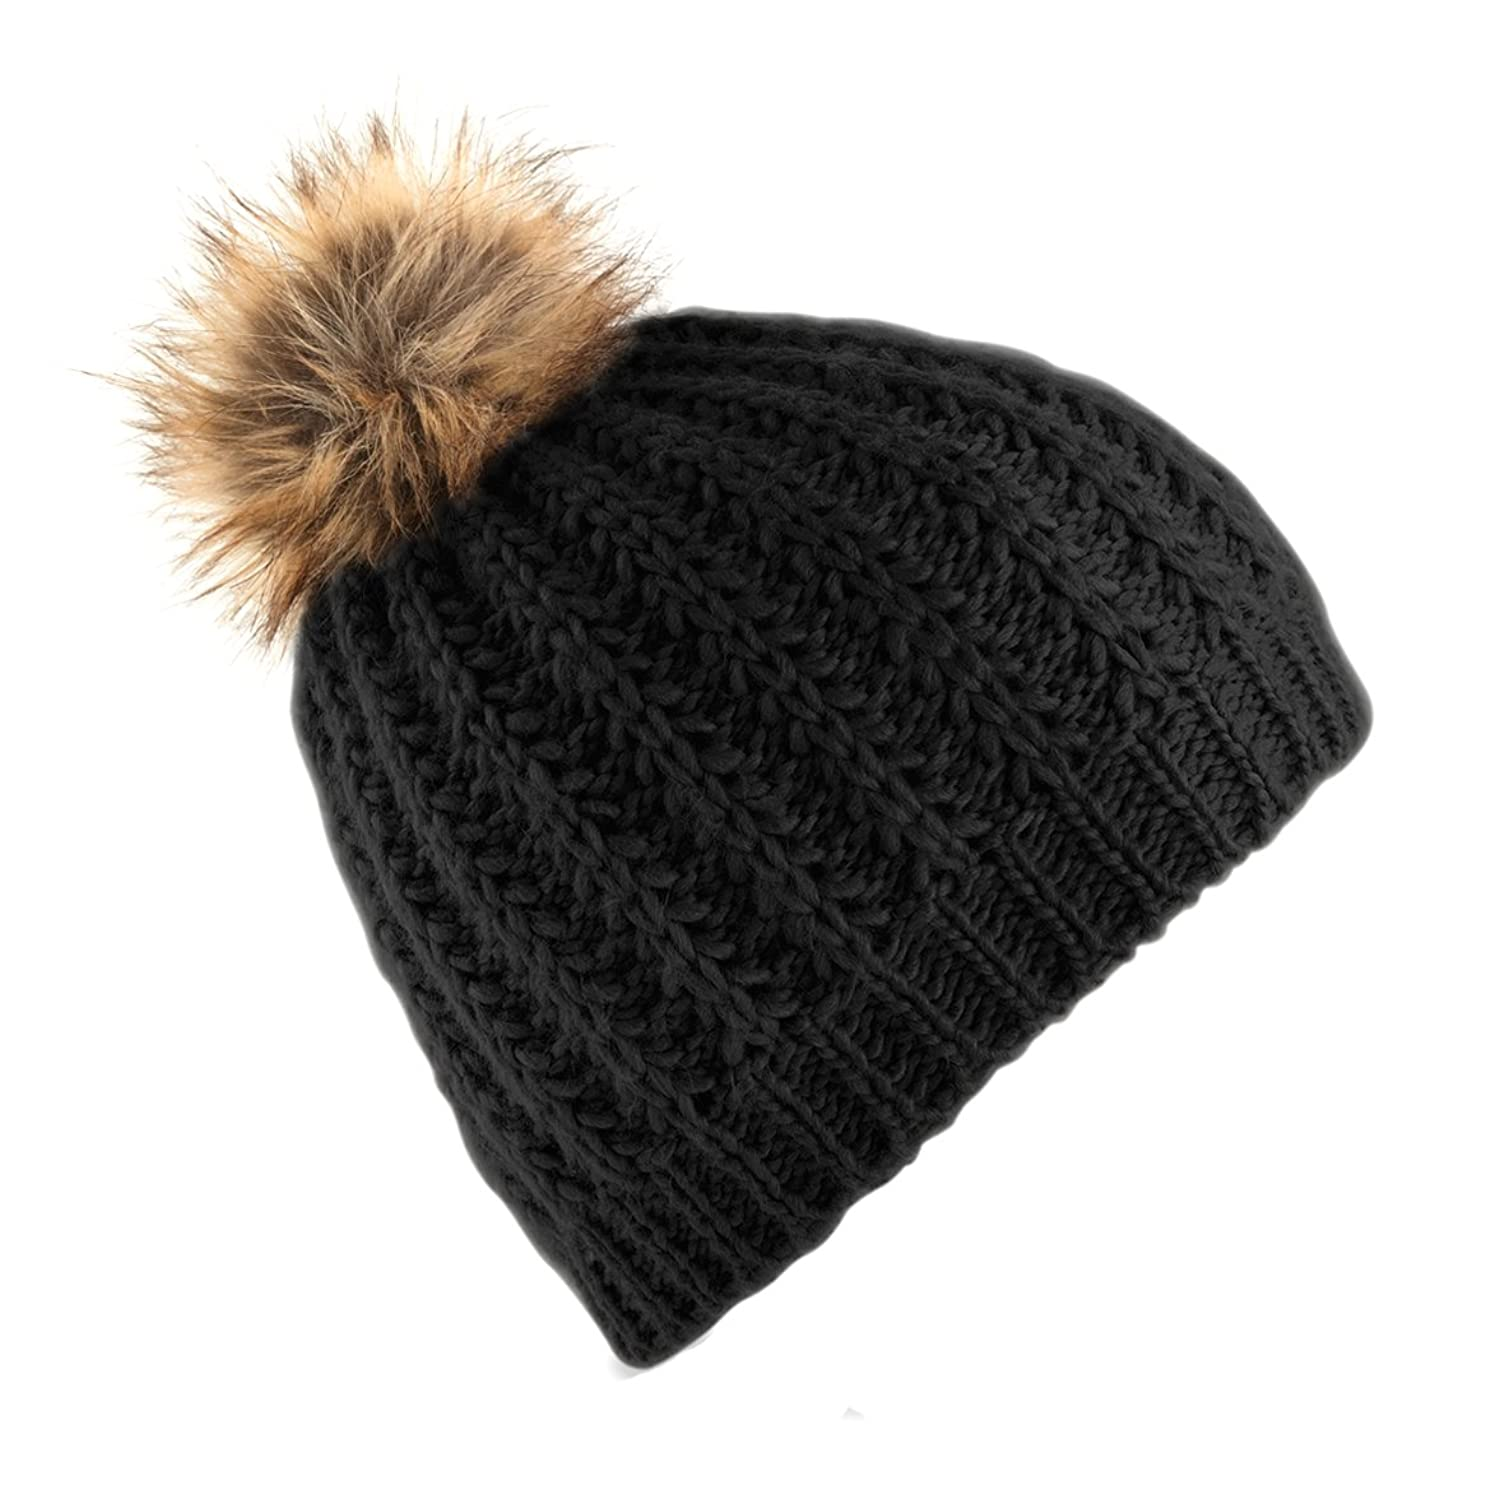 Cream Faux Fur Pom Pom Hat - Parchment N Lead 0b2bb1459738